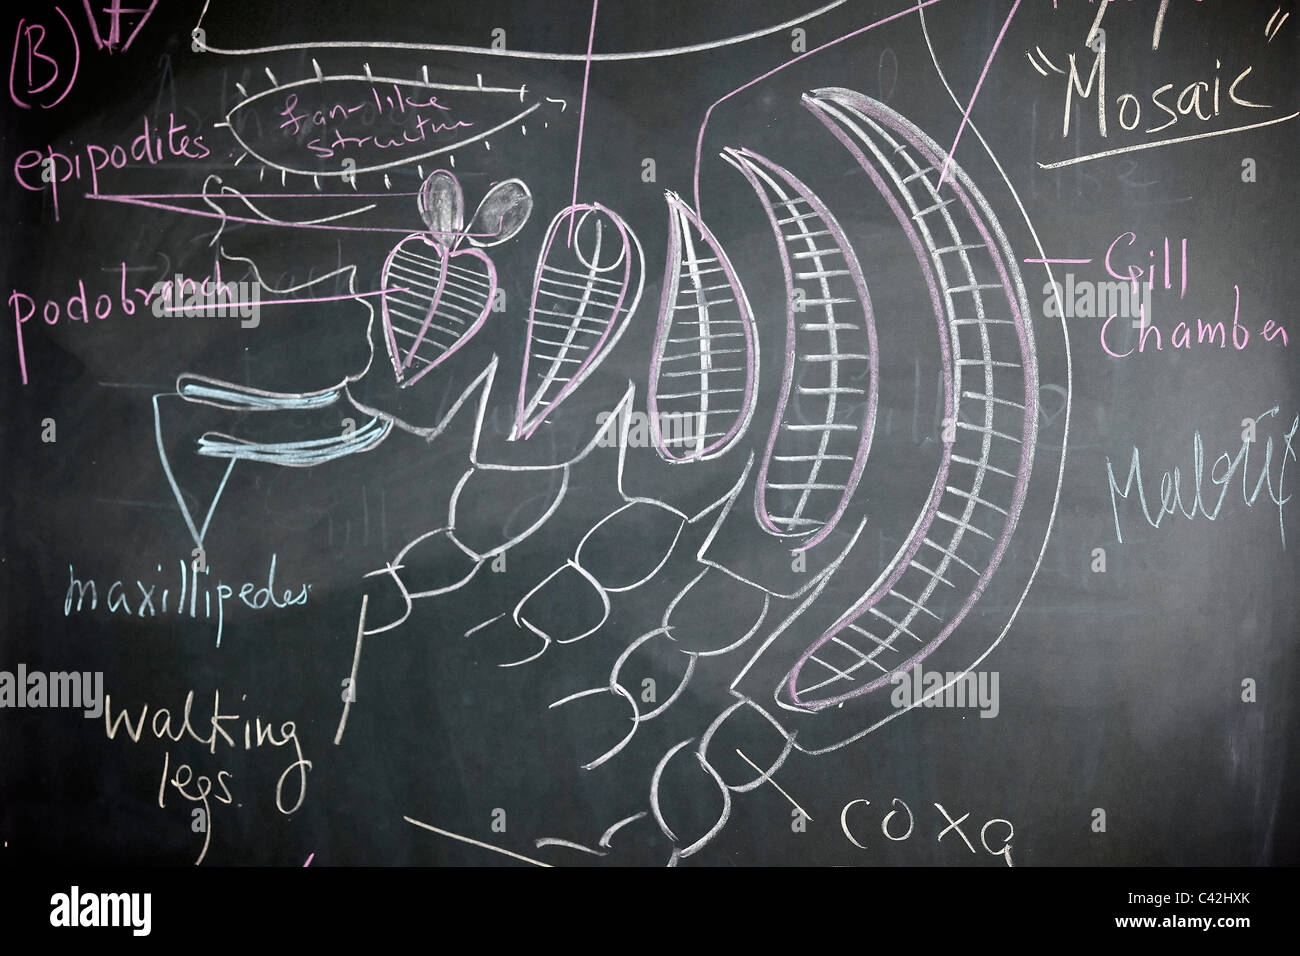 Body appendages Prawn arthropod blackboard Palemon classroom biology crustacean animal parts sketch drawing - Stock Image